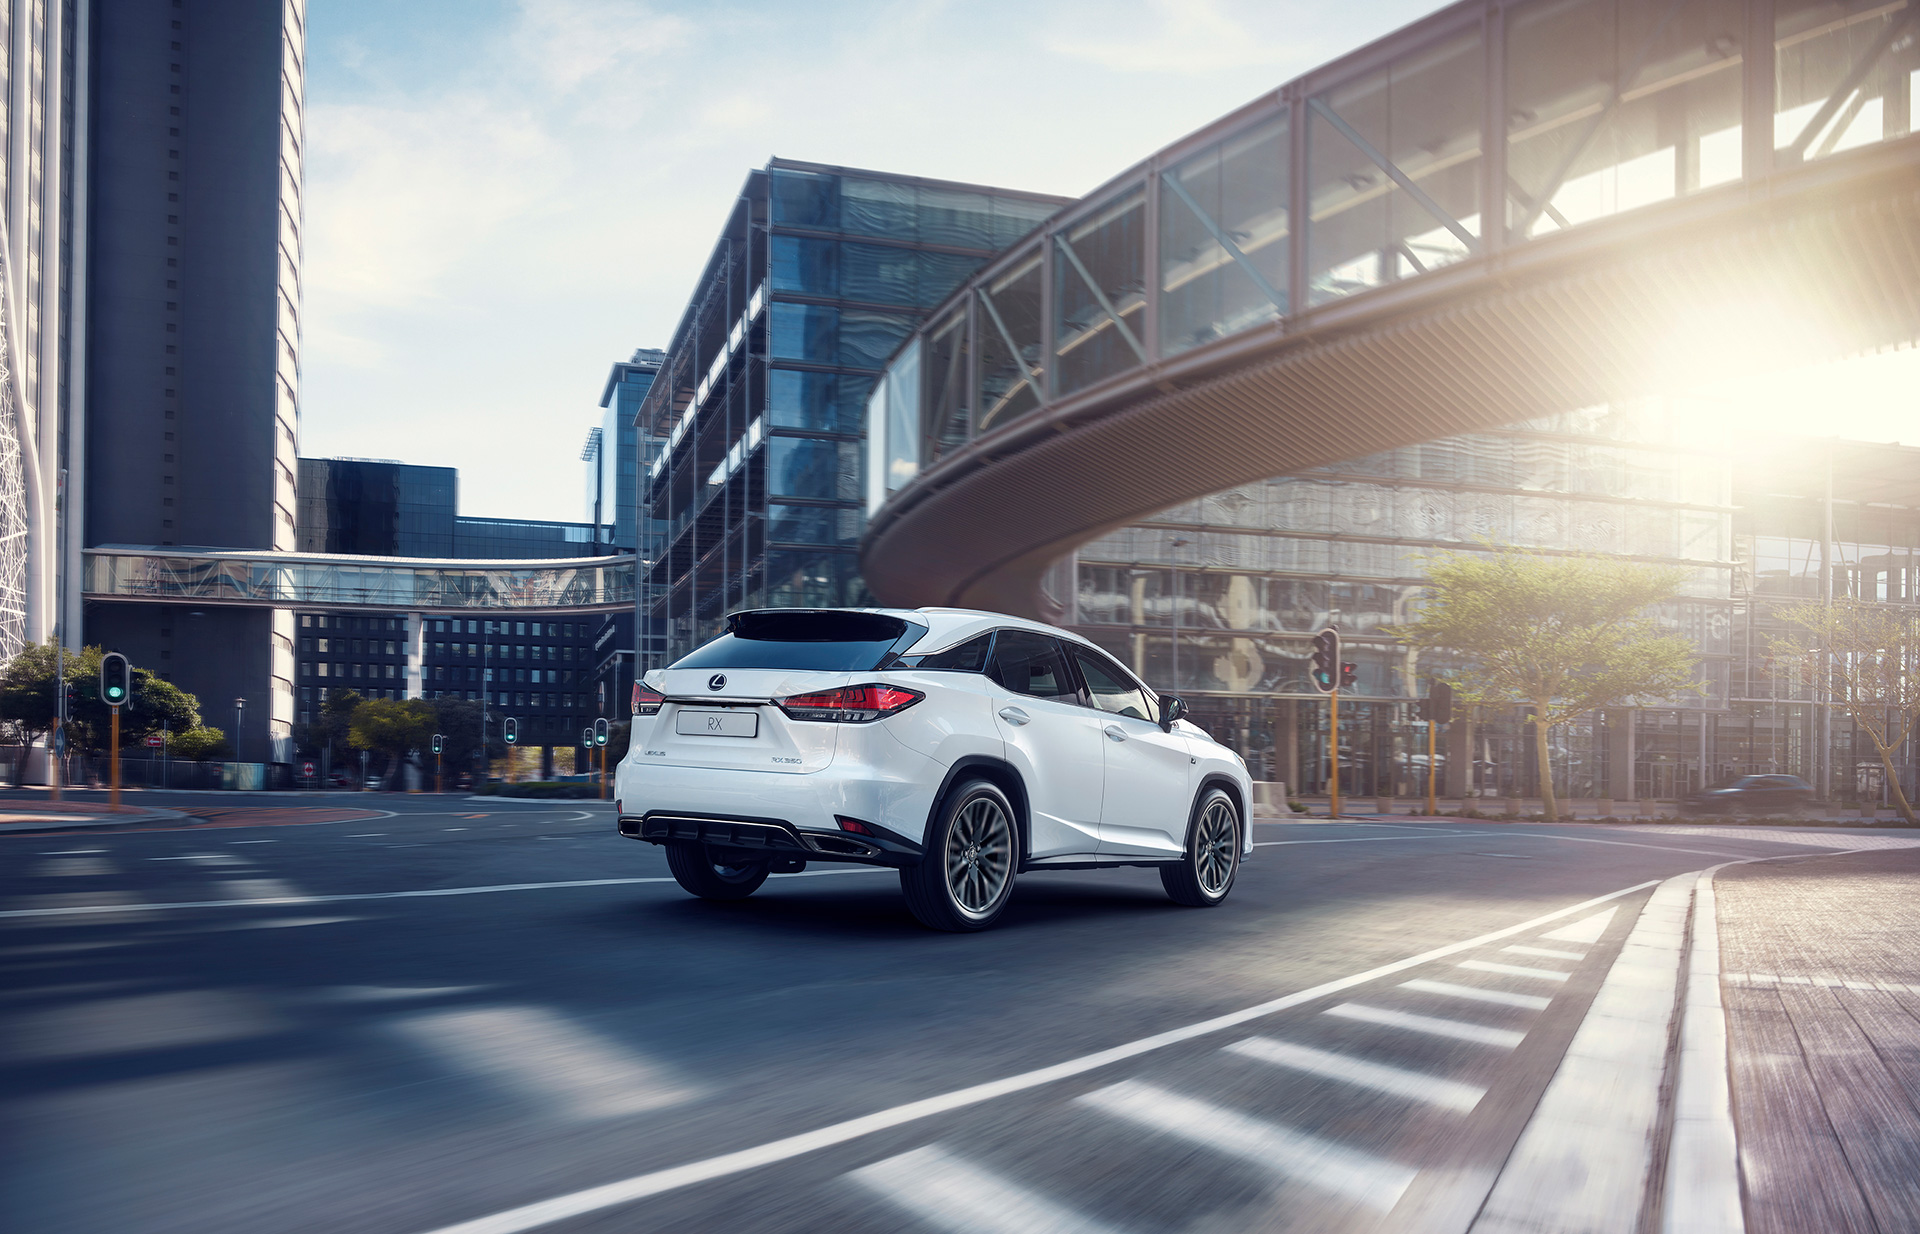 New Lexus RX Makes World DebutThe Pioneer of the Luxury SUV Segment Evolves to New Heights Equipped with the Latest Technology - Image 7